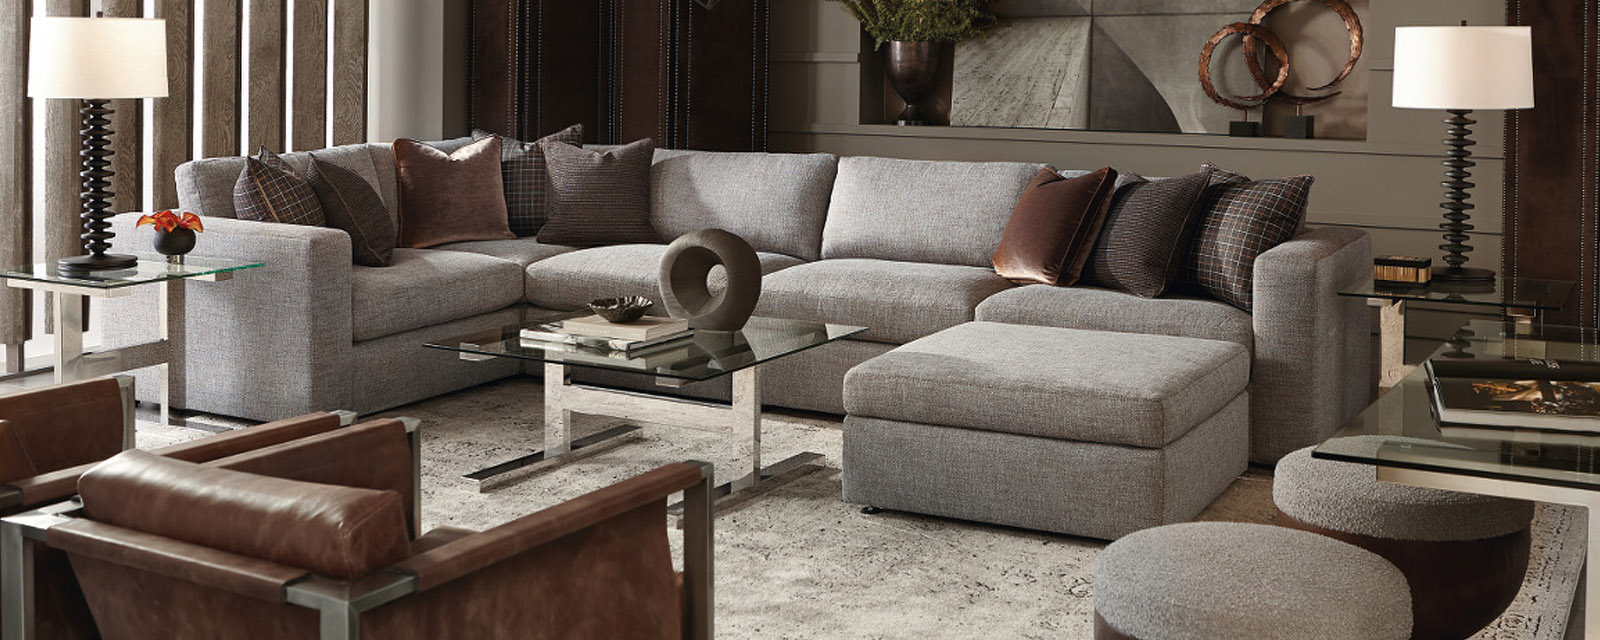 Where To Find Modern Furniture In Calgary